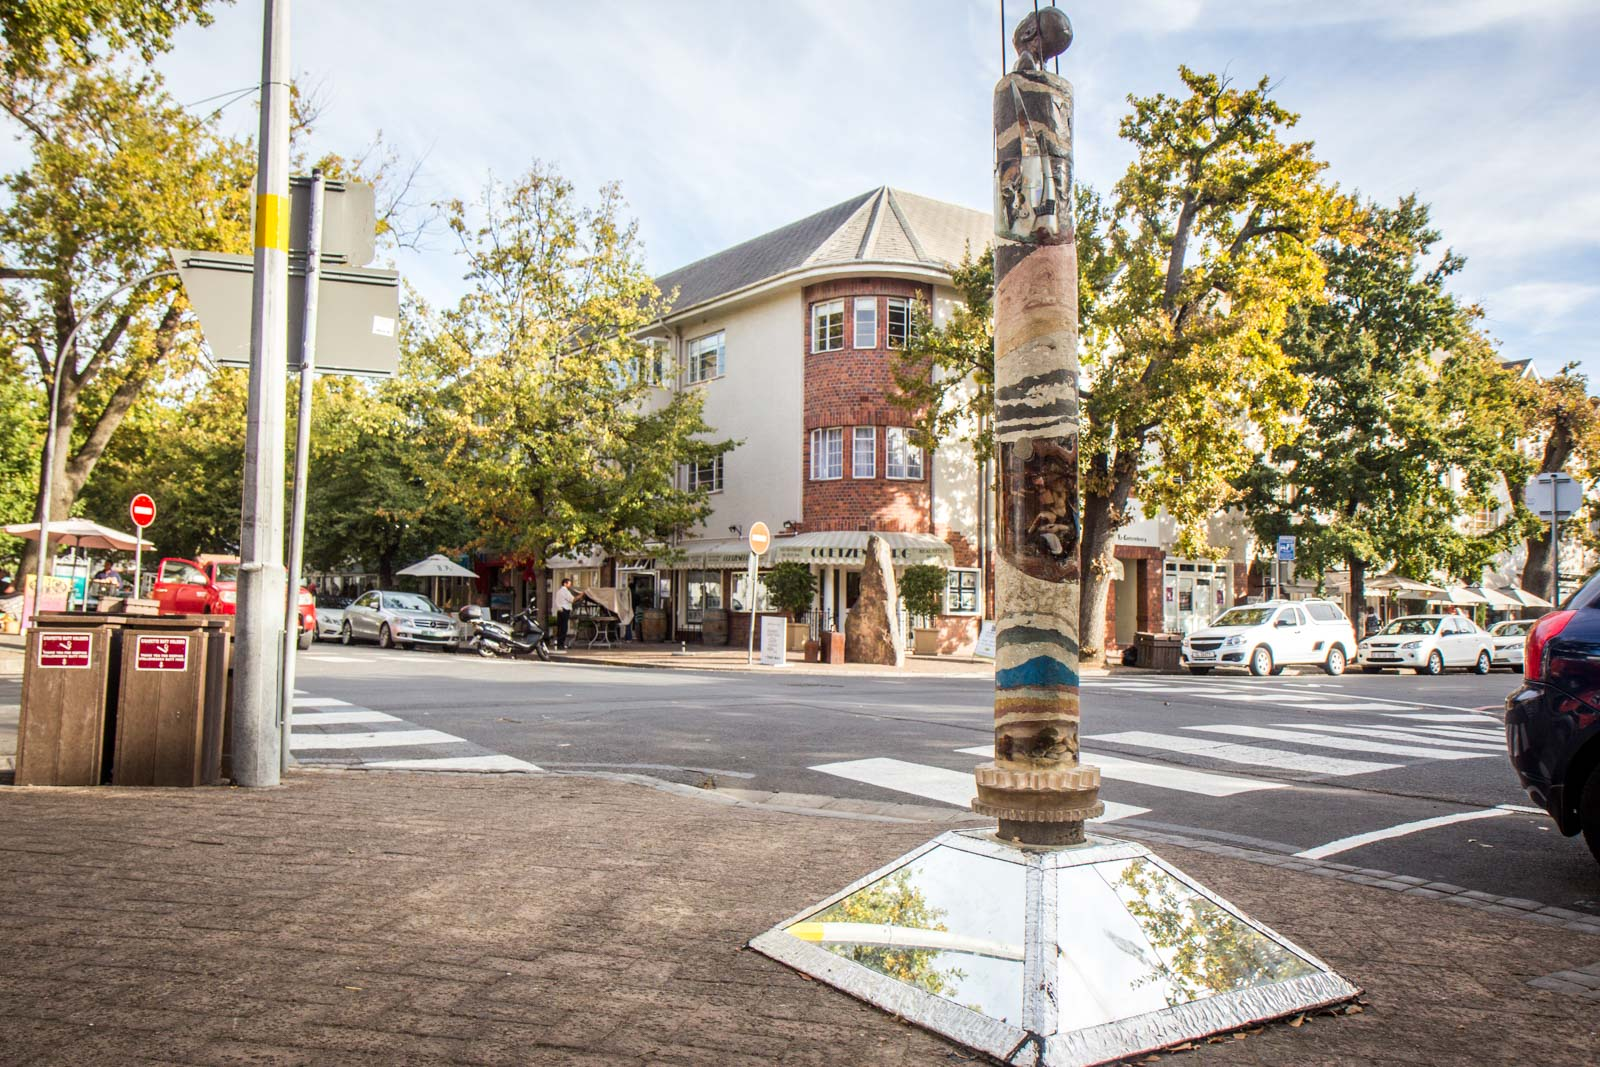 public art in stellenbosch, sculptures, reflections